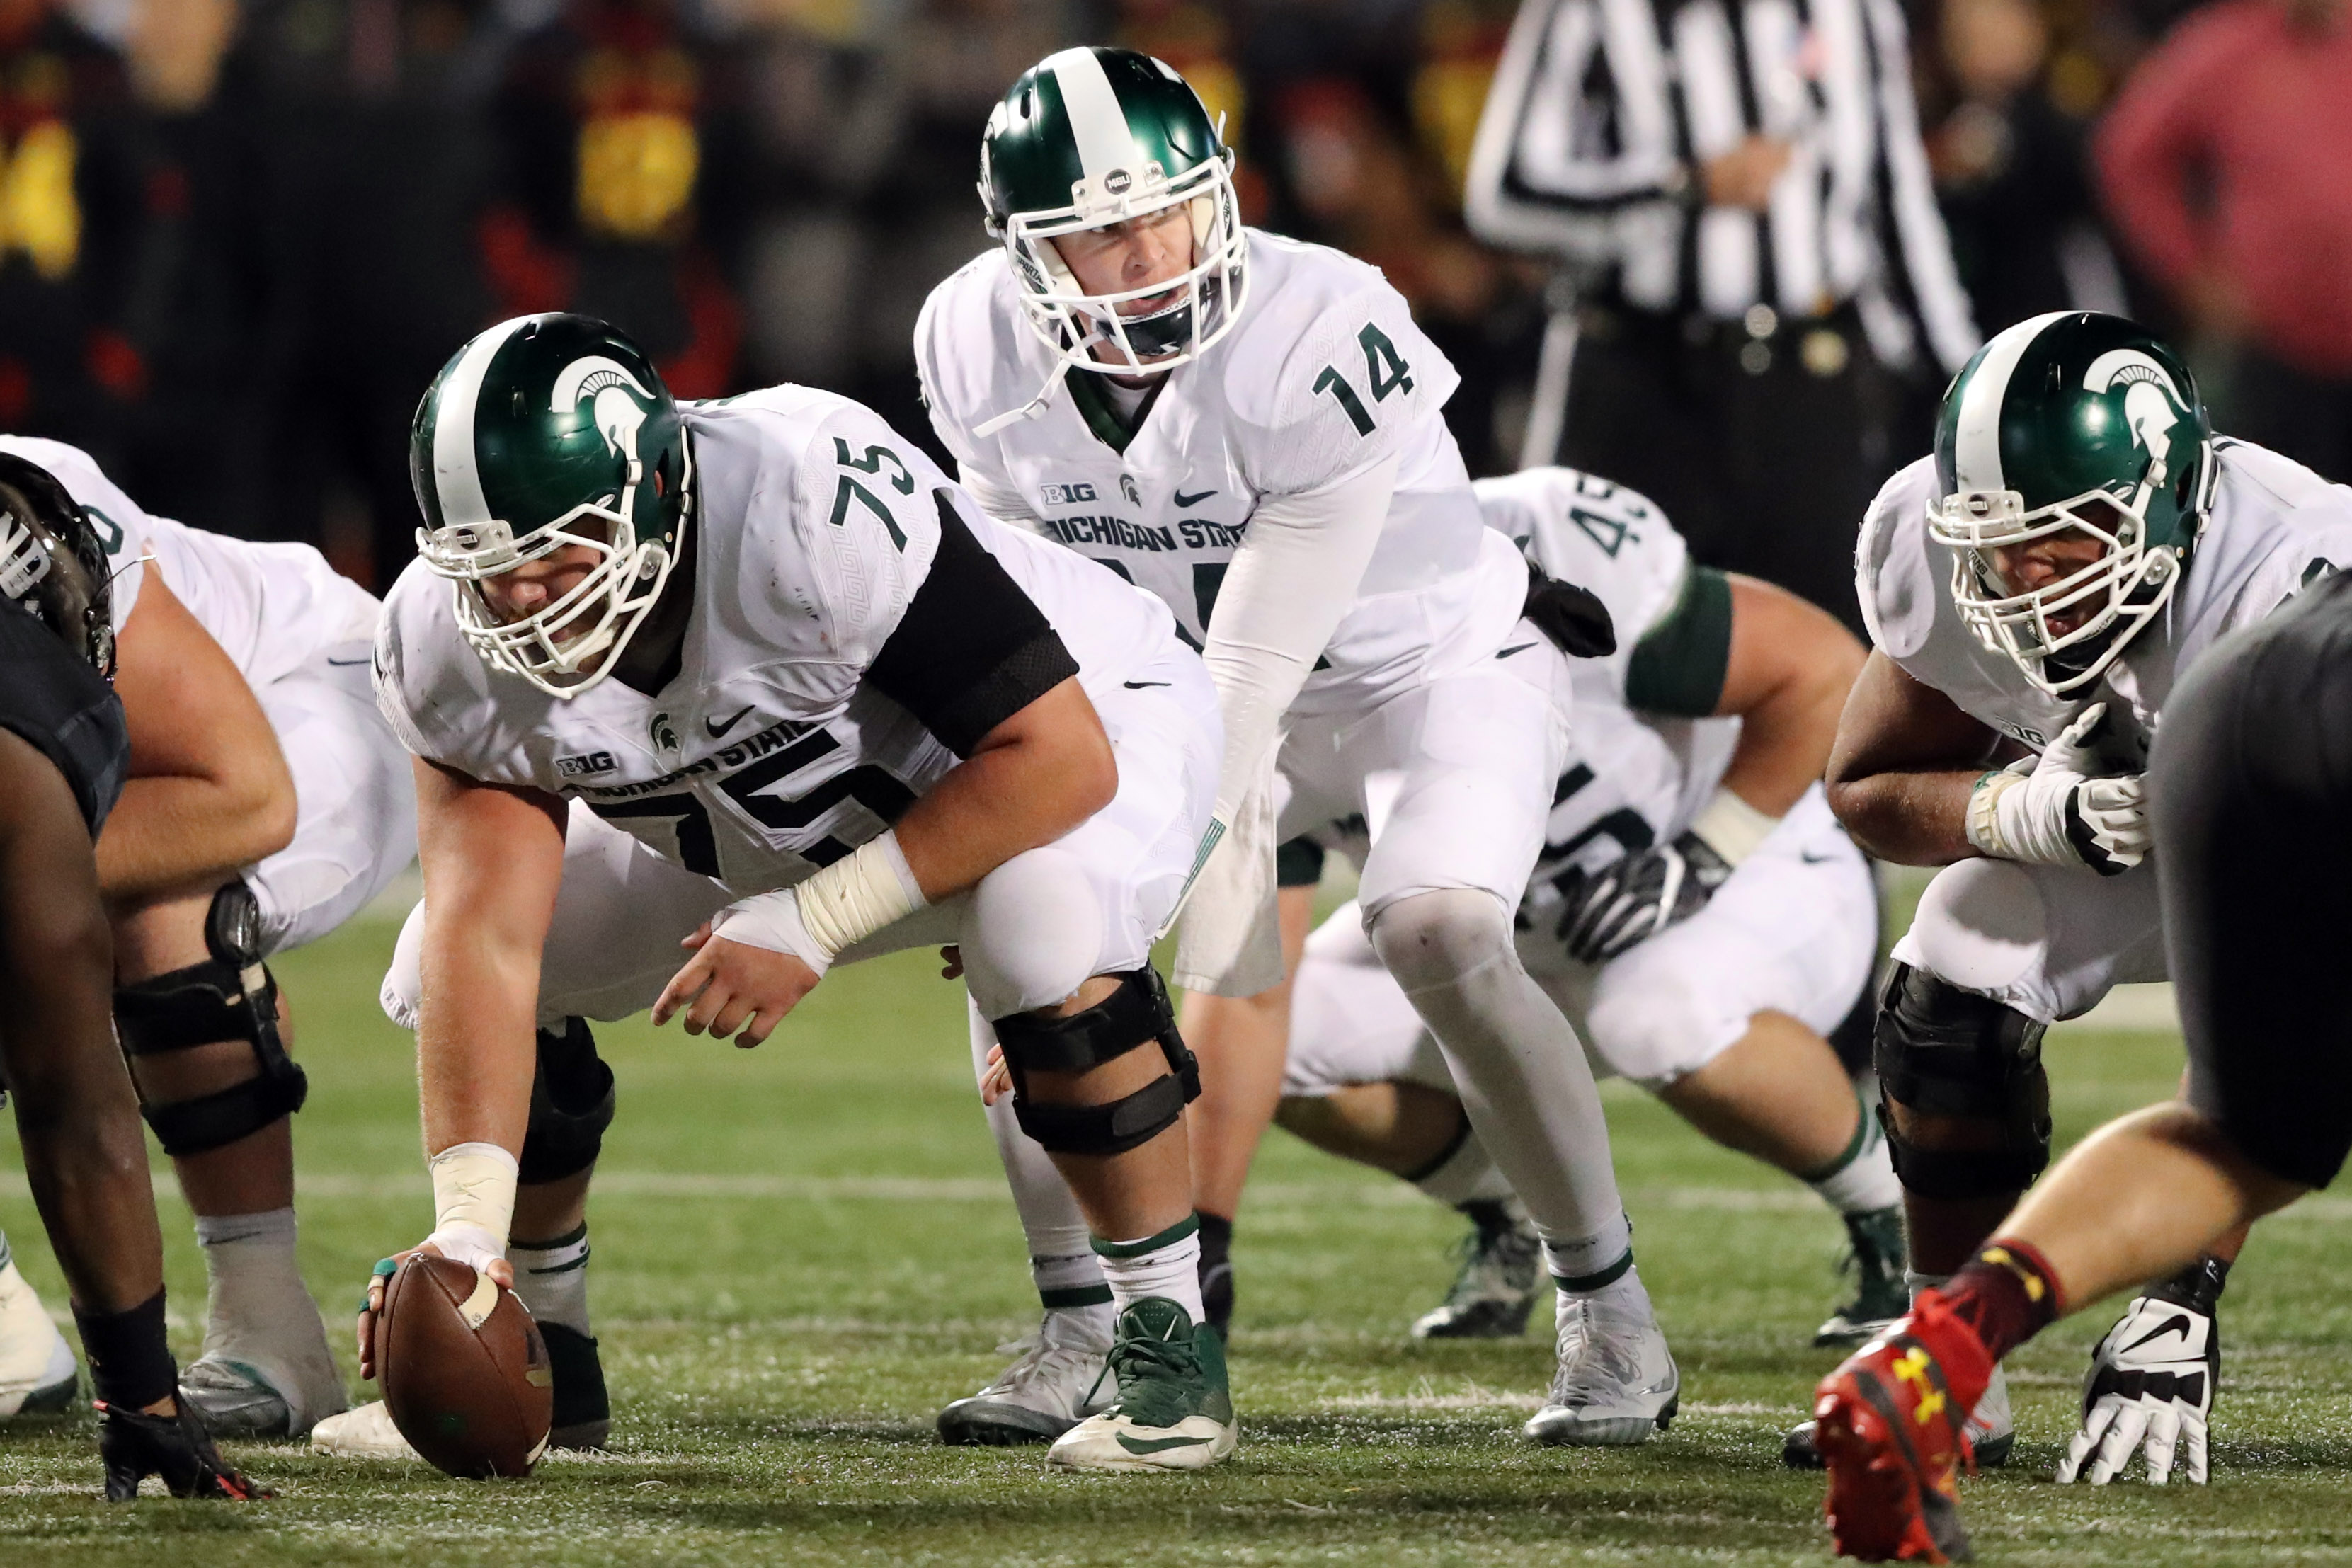 Michigan State Football: 3 things to expect in spring practice